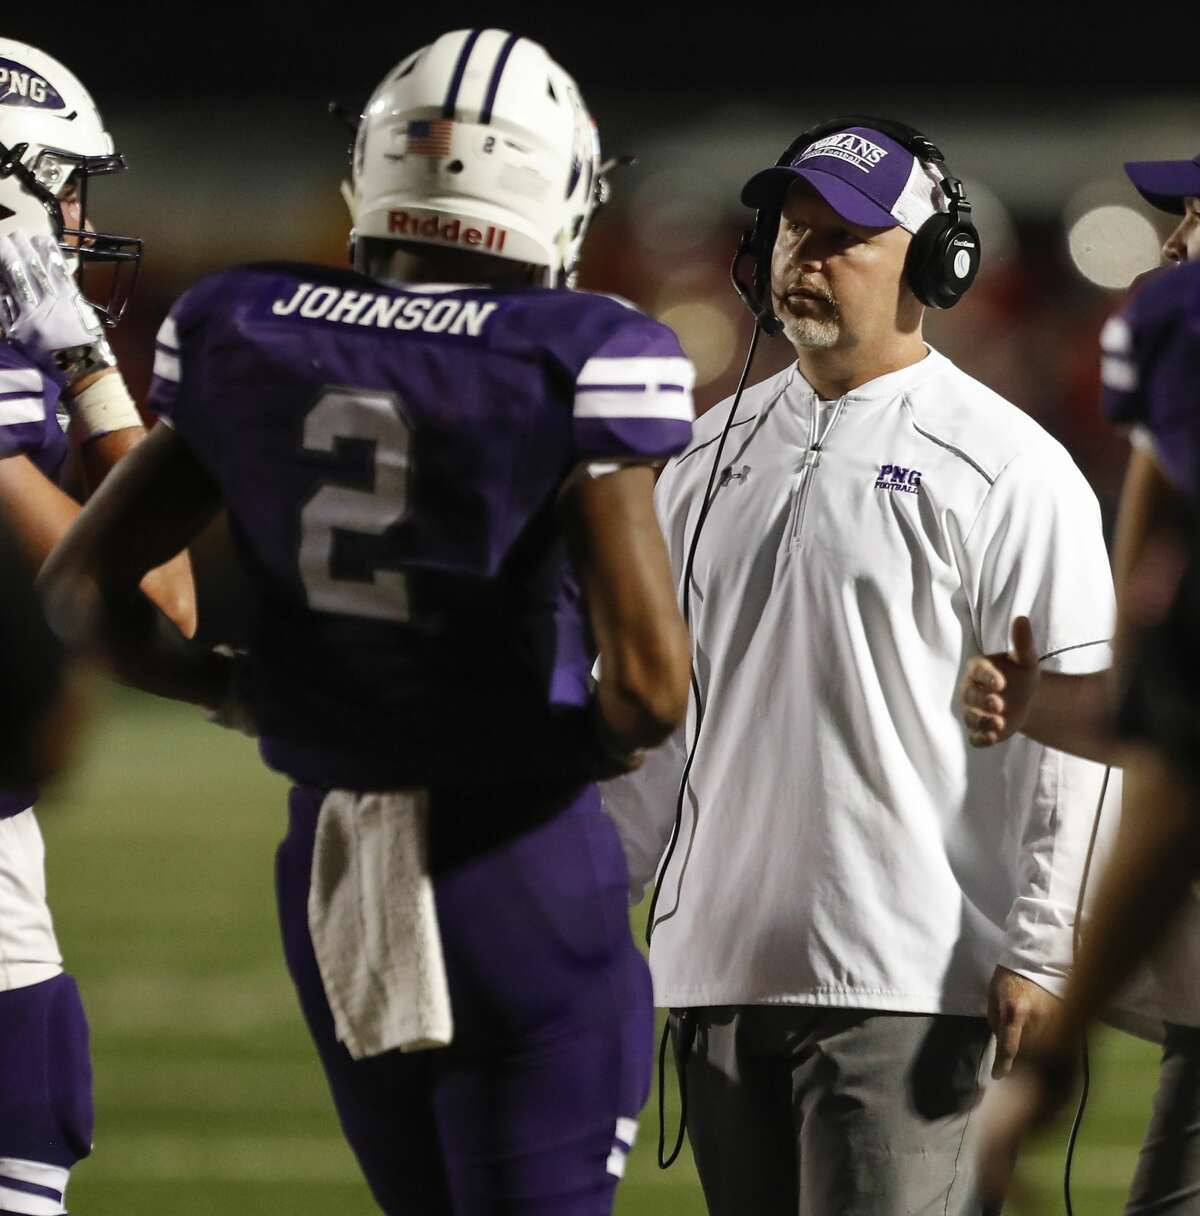 Port Neches-Groves head coach Brandon Faircloth talks to quarterback Roschon Johnson during a time out in the second quarter of a Class 5A bi-district playoff football game at Stallworth Stadium on Friday, Nov. 17, 2017, in Baytown. ( Brett Coomer / Houston Chronicle )